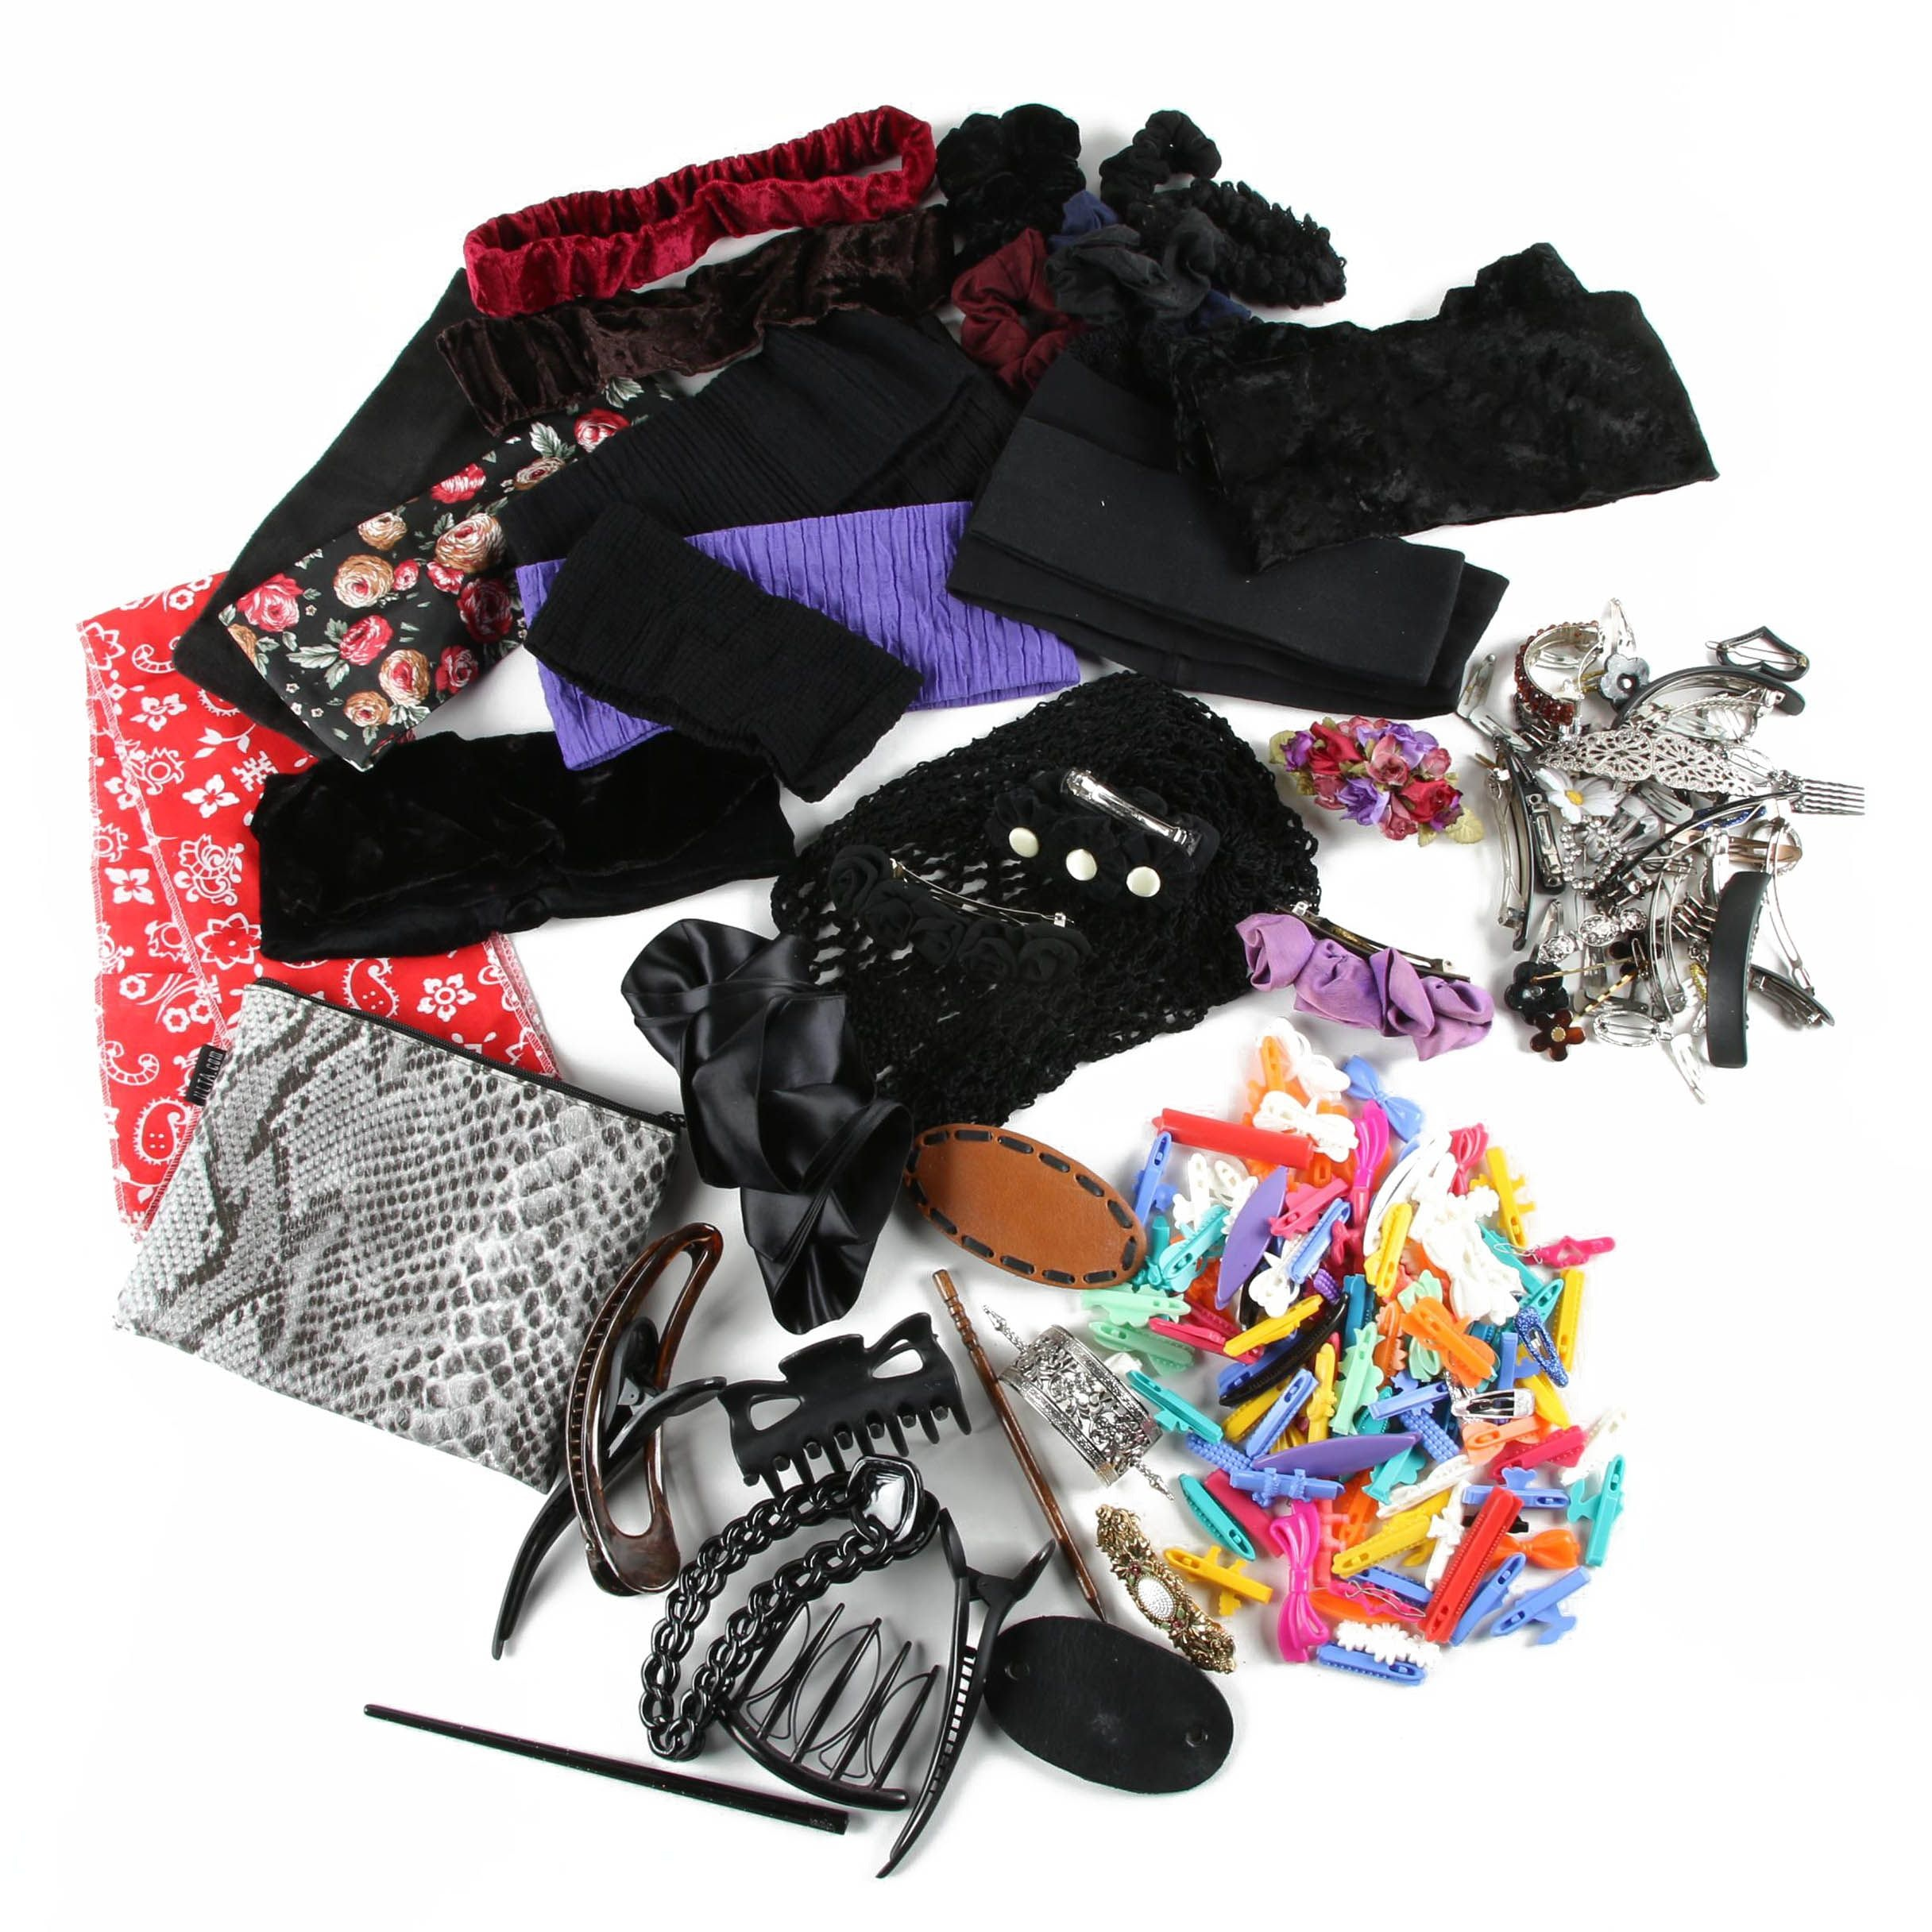 Large Assortment of Hair Accessories and Ulta Cosmetic Bag